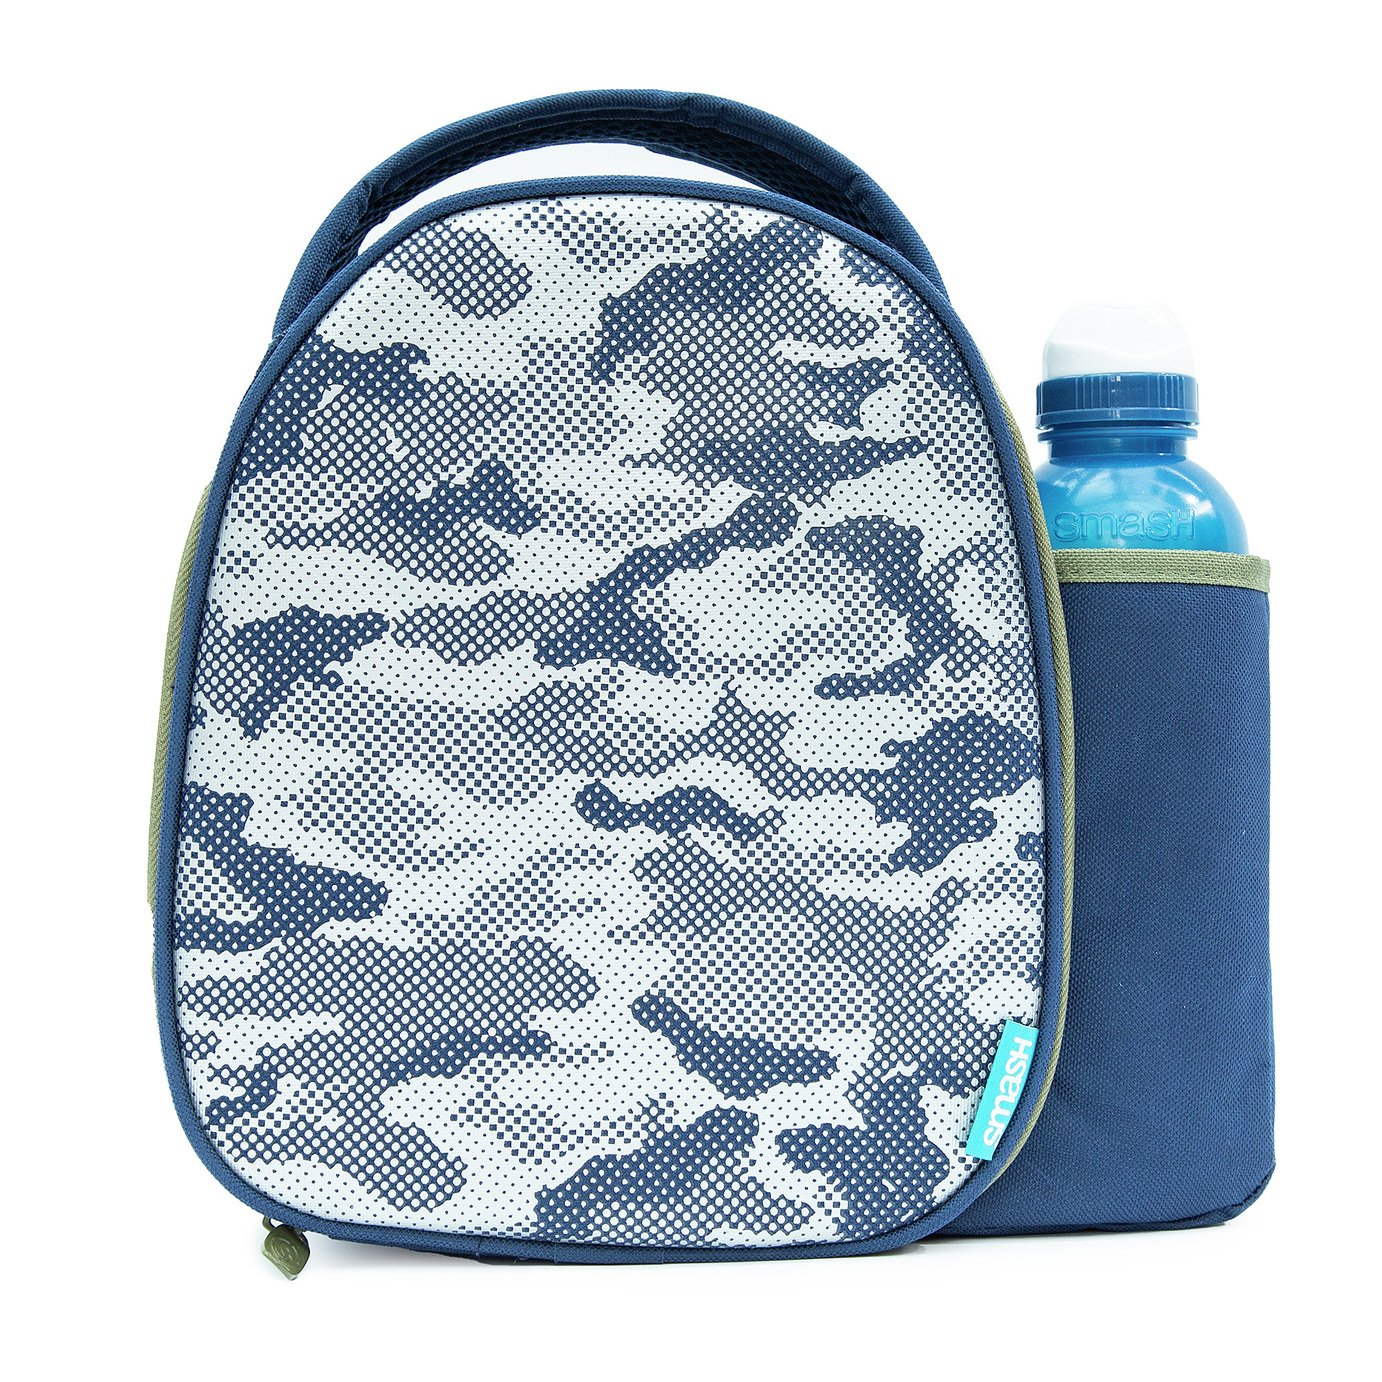 Smash Camo Lunch Bag and Bottle